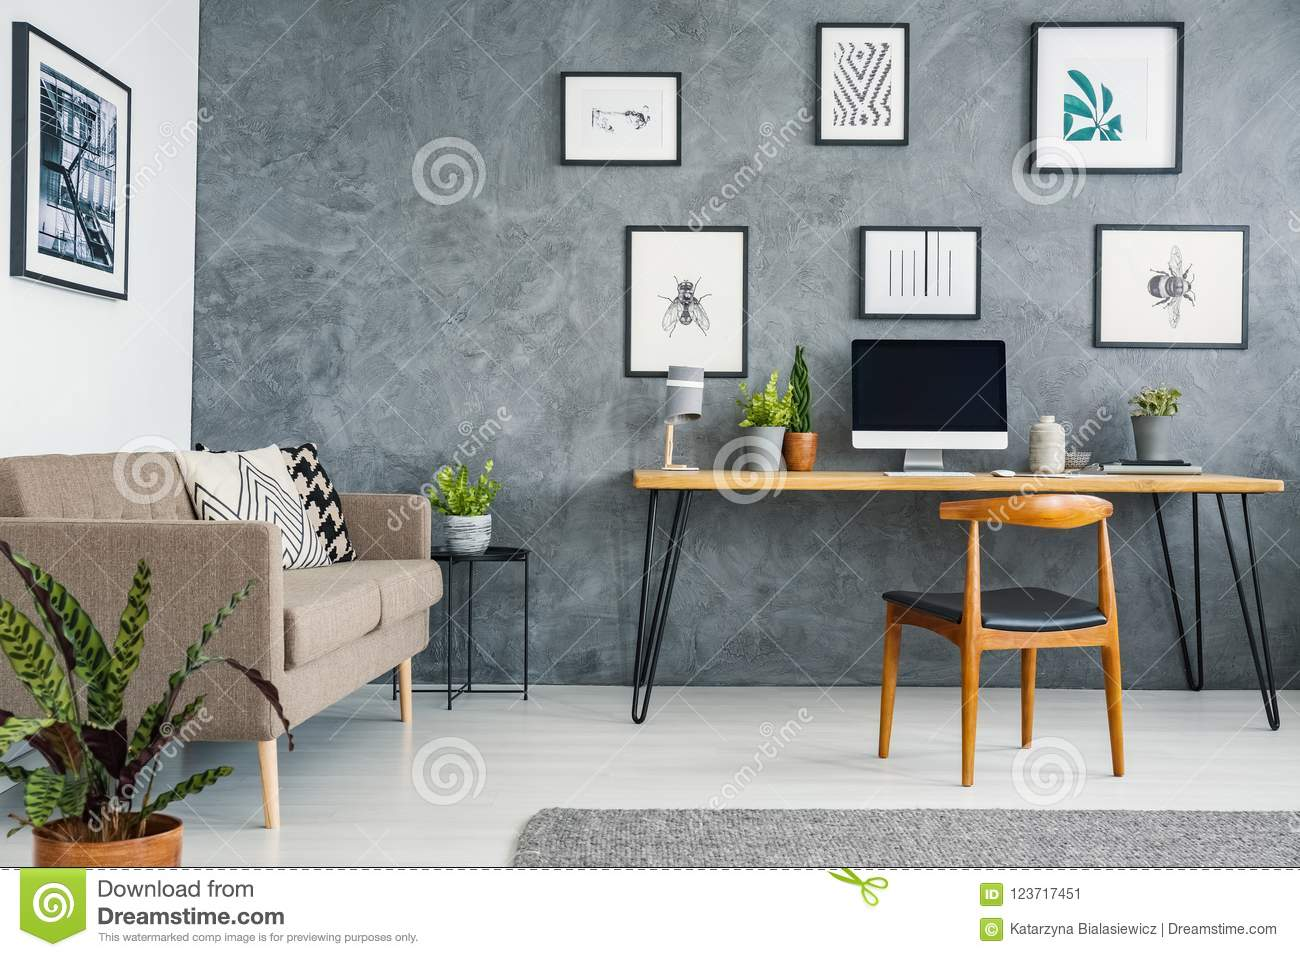 Brown Couch Next To Wooden Desk And Chair In Grey Freelancer